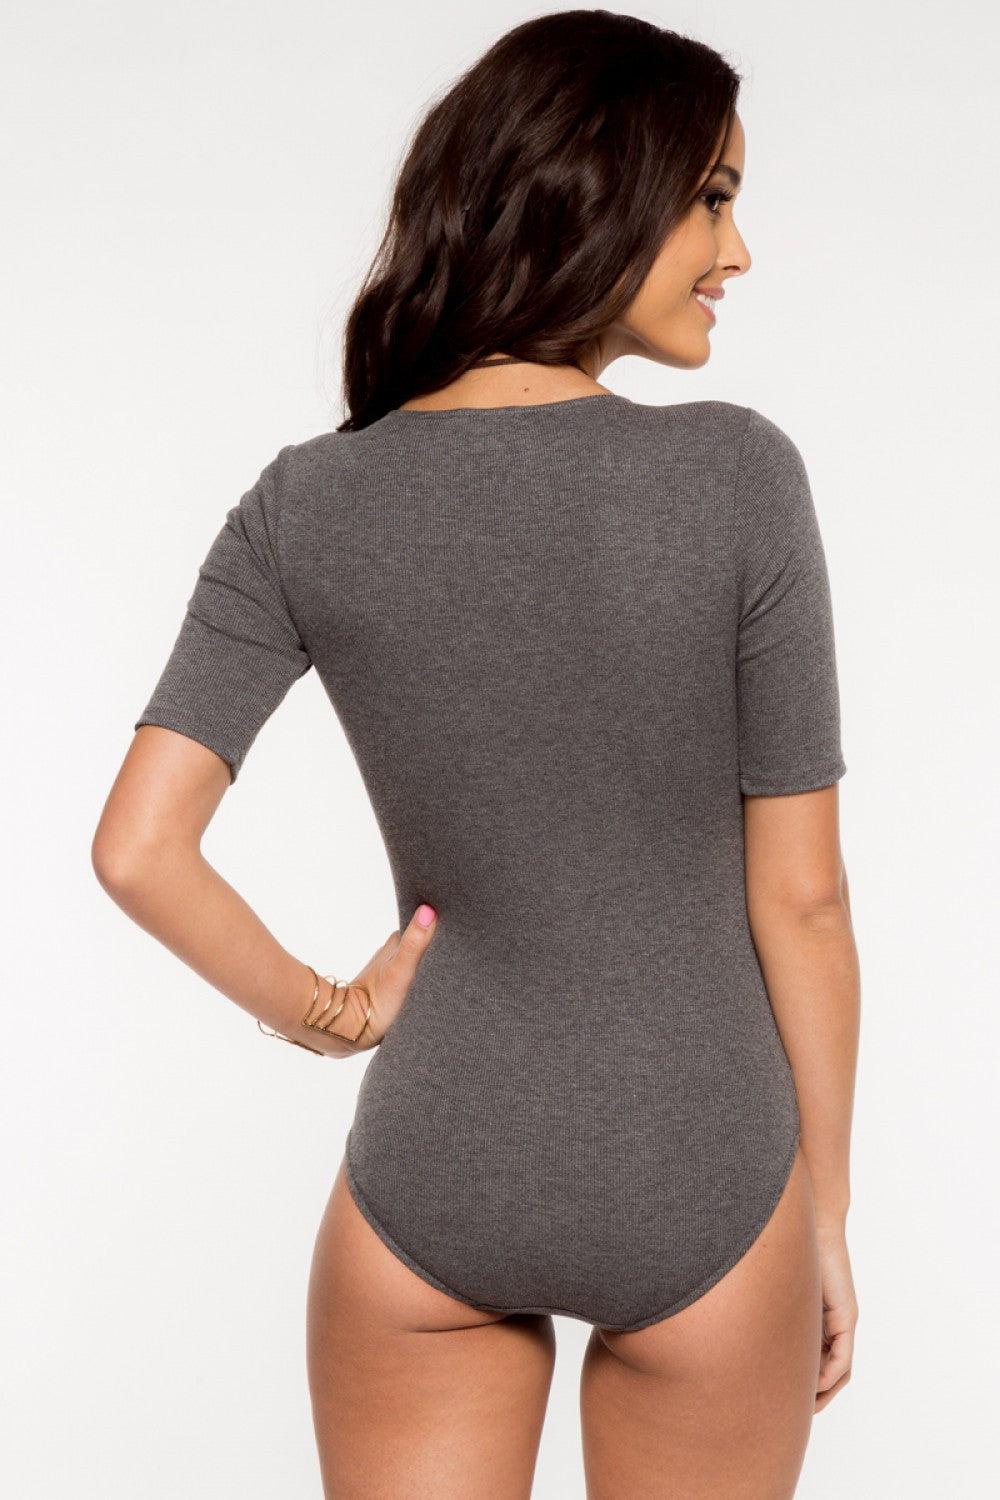 3/4-Sleeve Cross Over Front Ribbed Bodysuit - Charcoal Gray